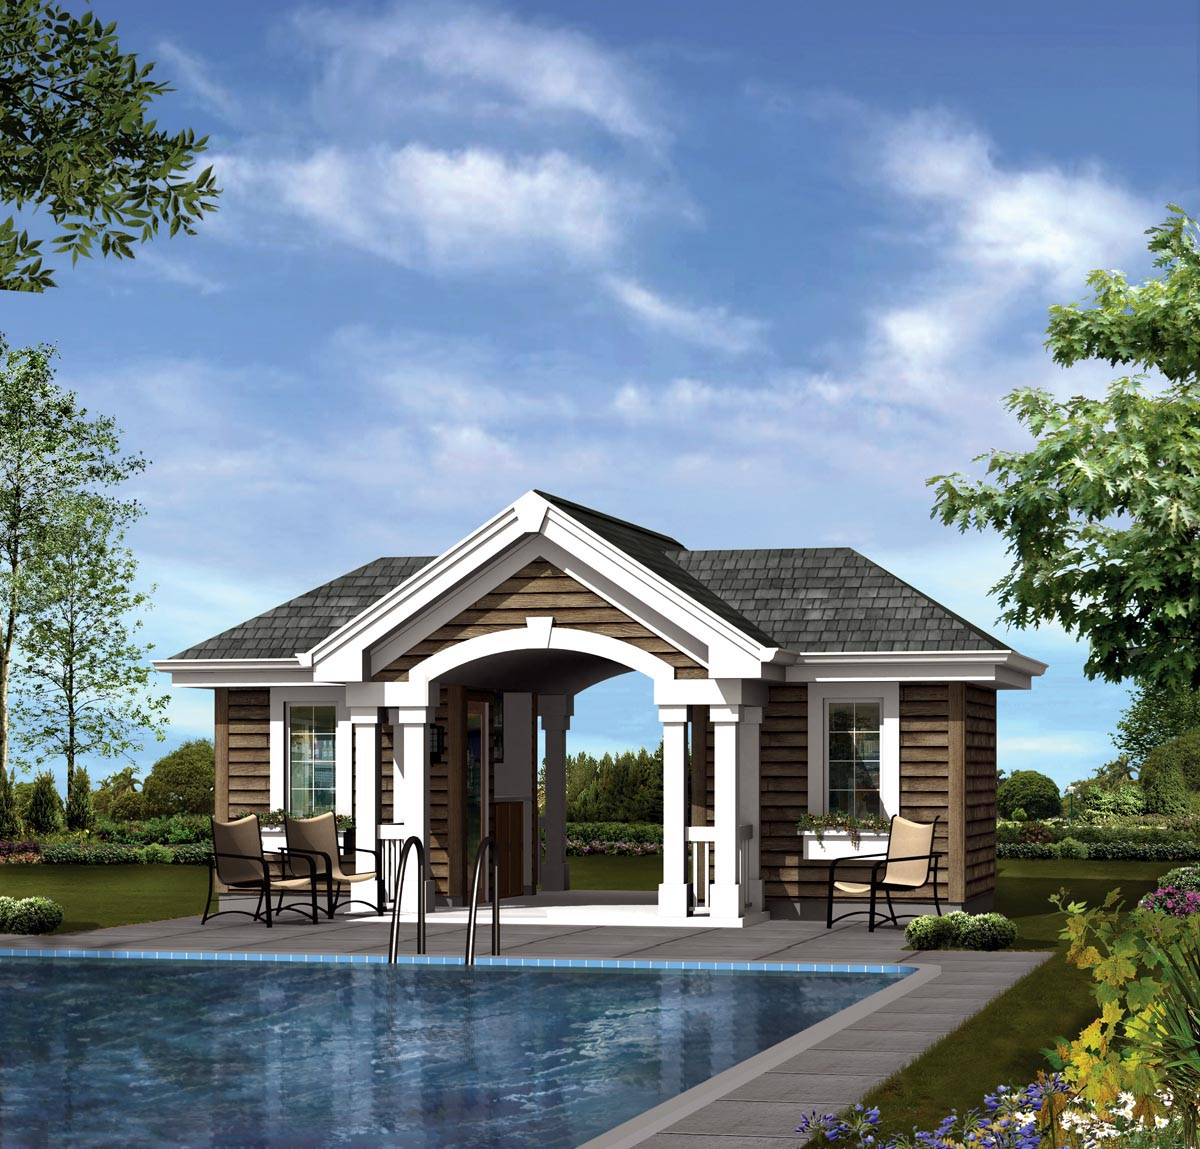 poolhouse plan 95941 at familyhomeplans com poolhouse plan 95941 elevation